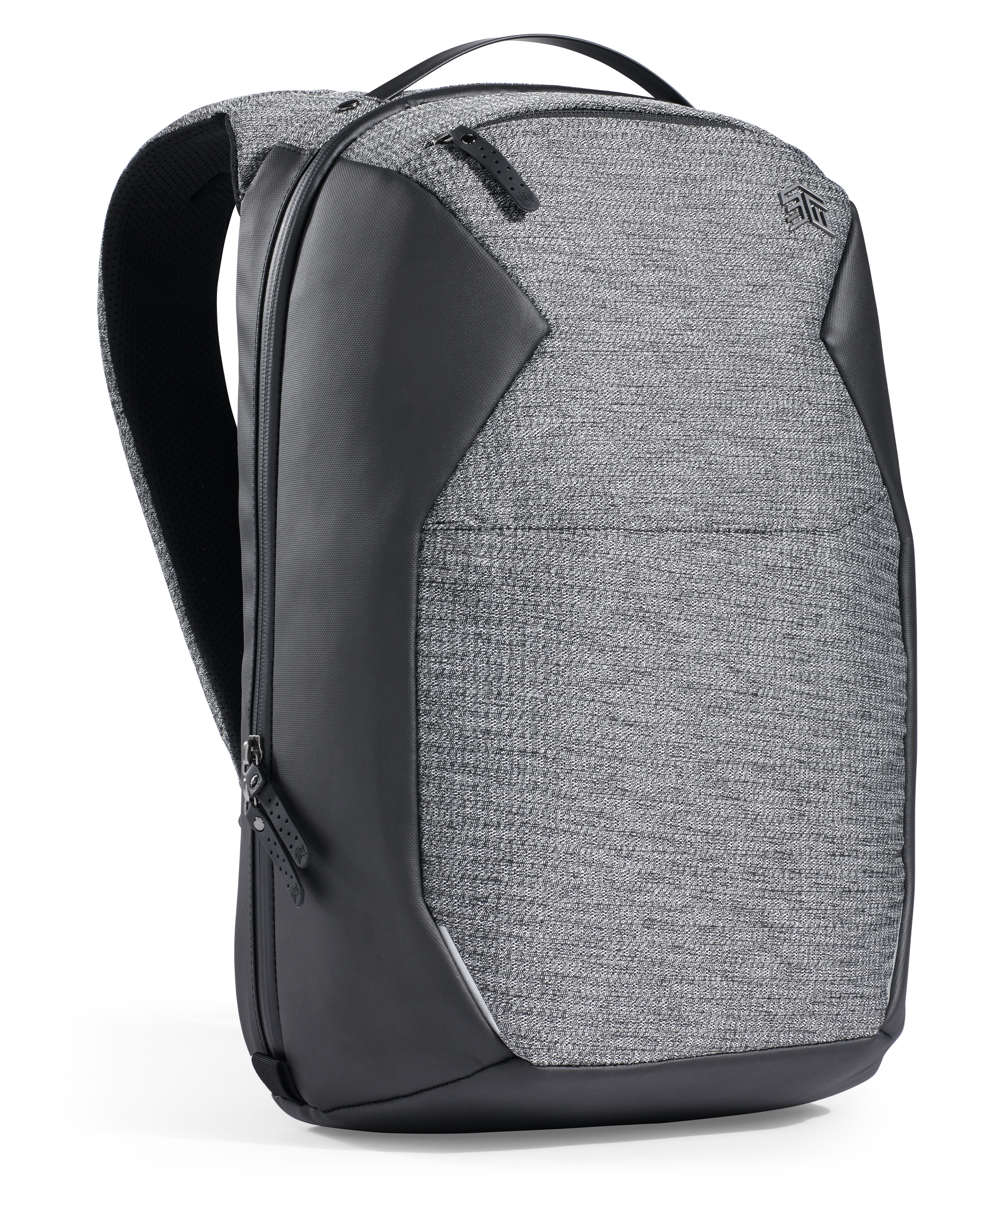 STM Myth Backpack 18L